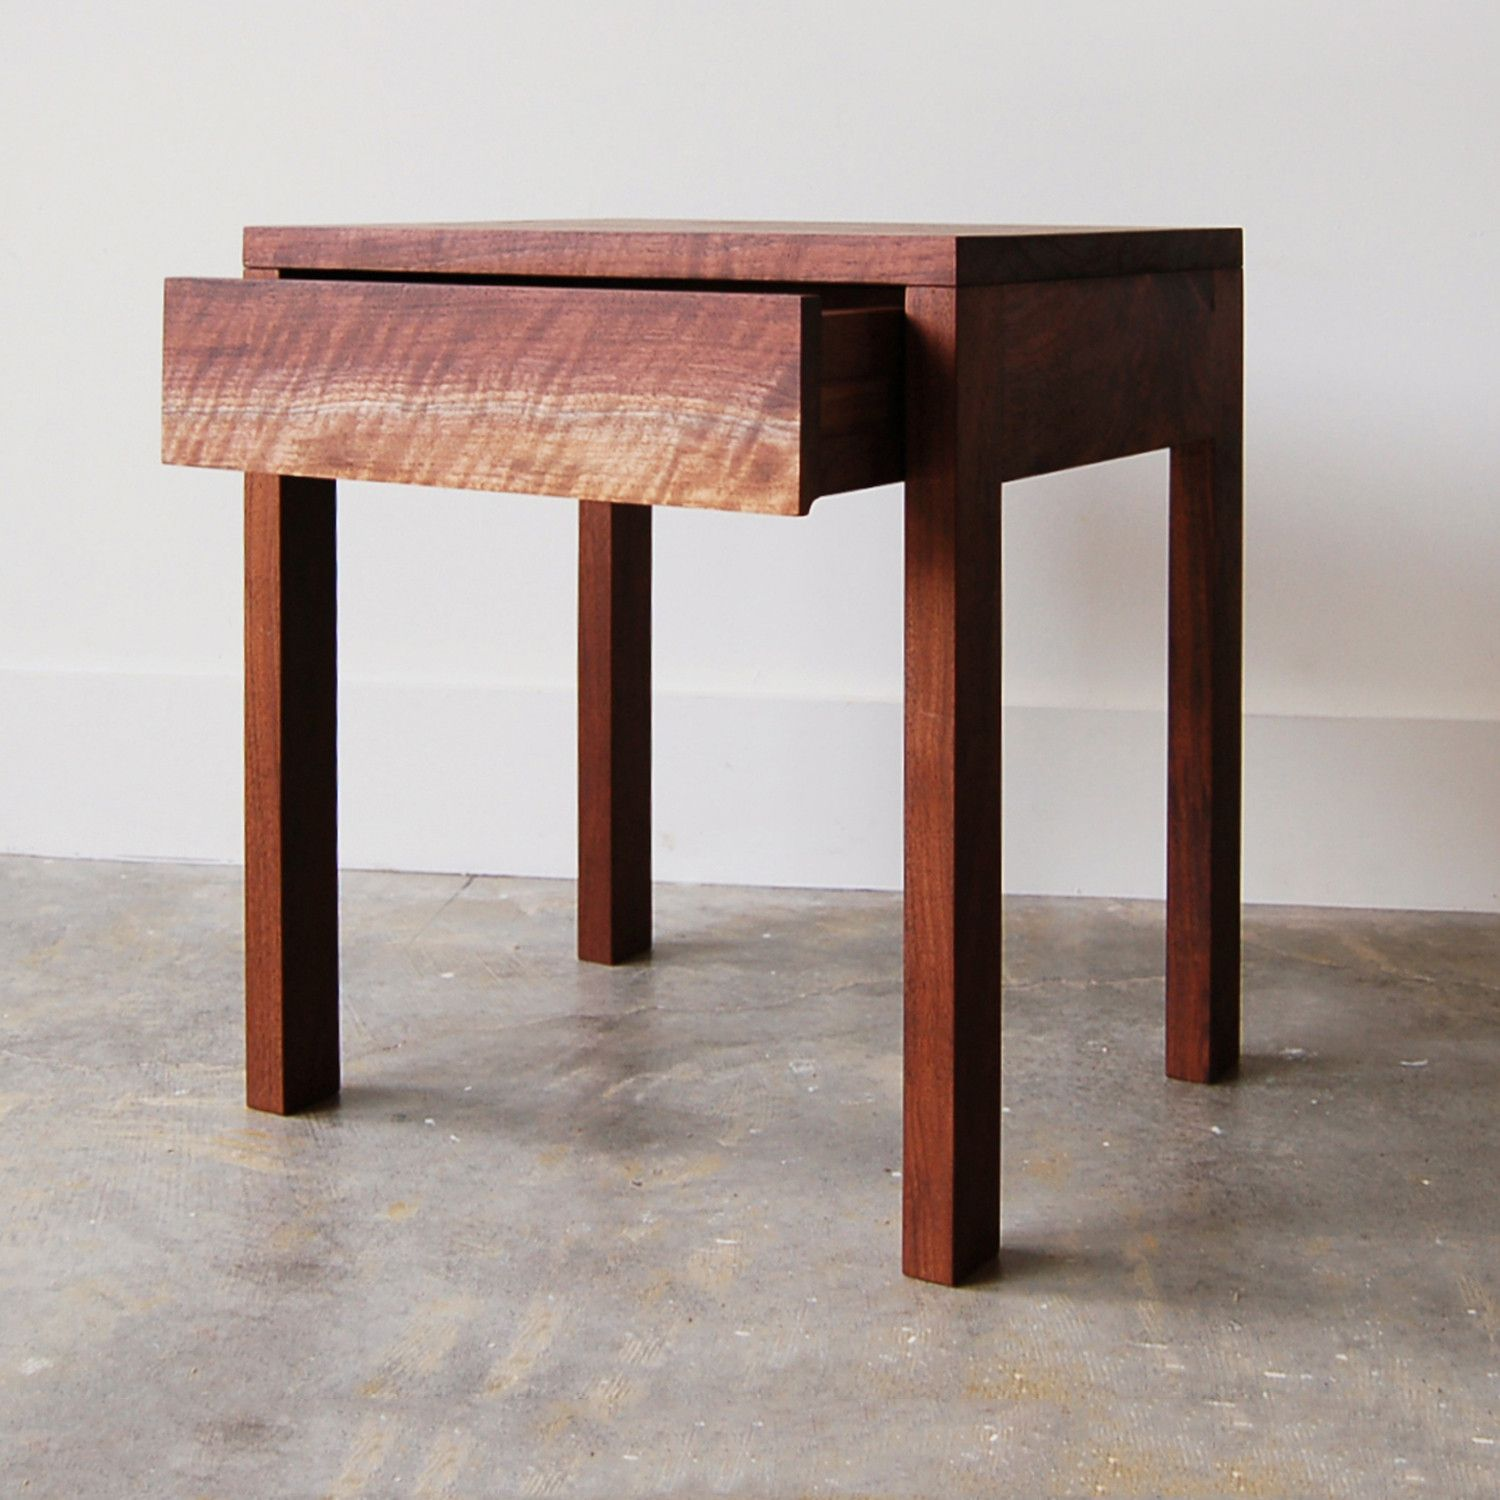 Loft Side Table With Drawer Furniture Wood Design Side Table With Drawer [ 1500 x 1500 Pixel ]